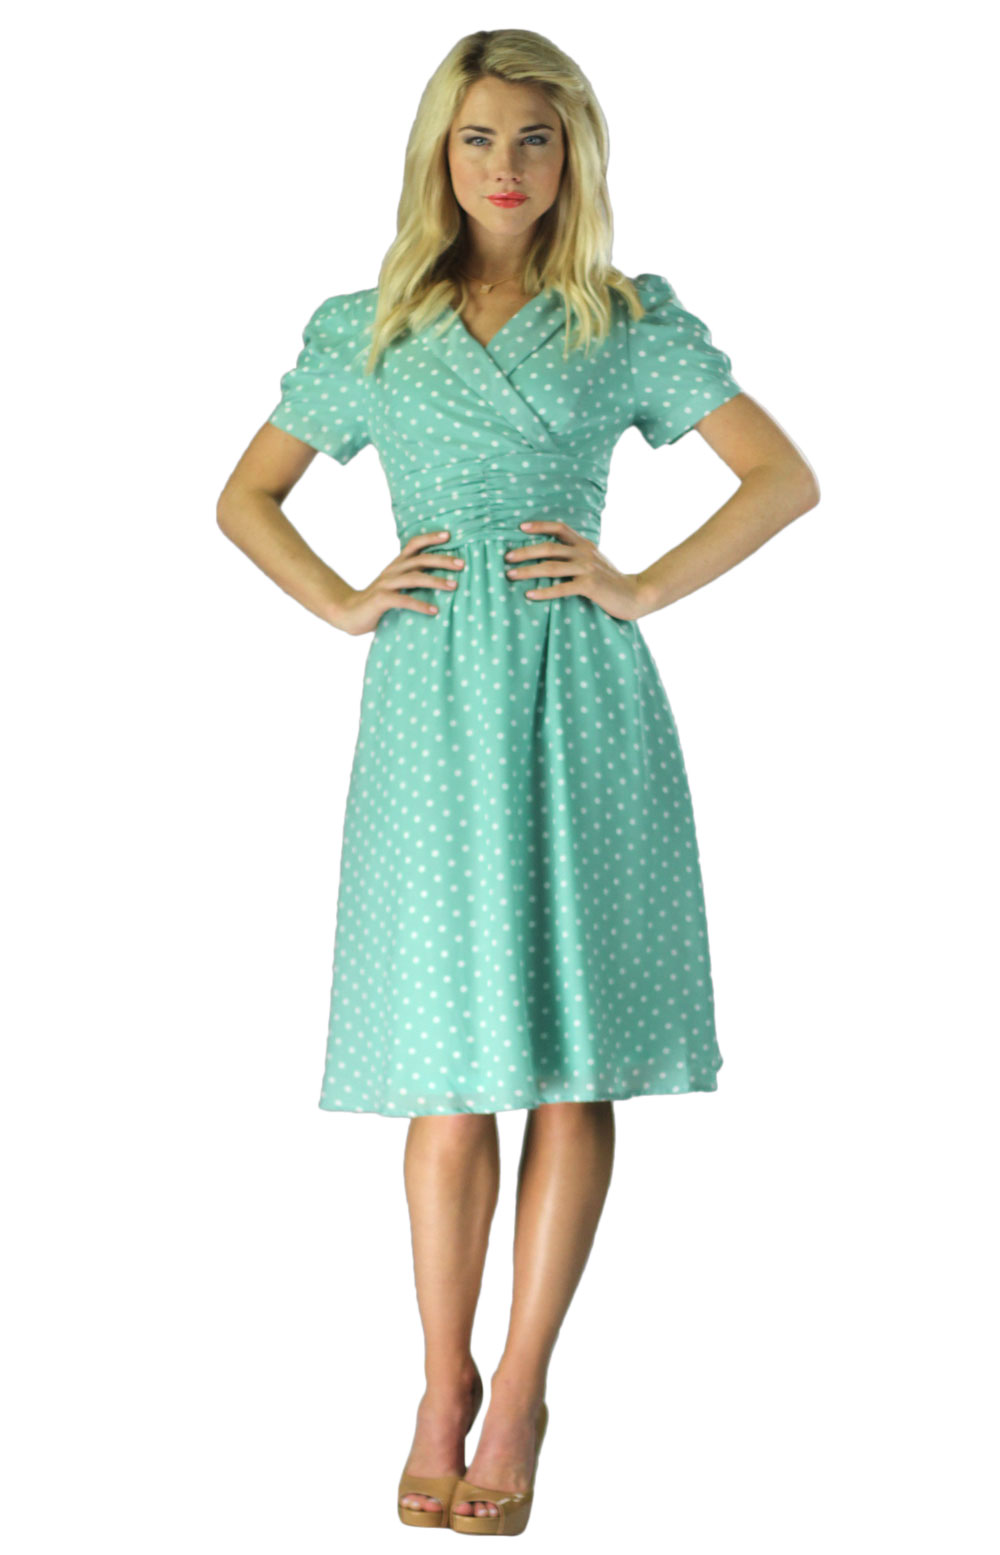 Vintage Modest Dresses in Mint Polka Dot